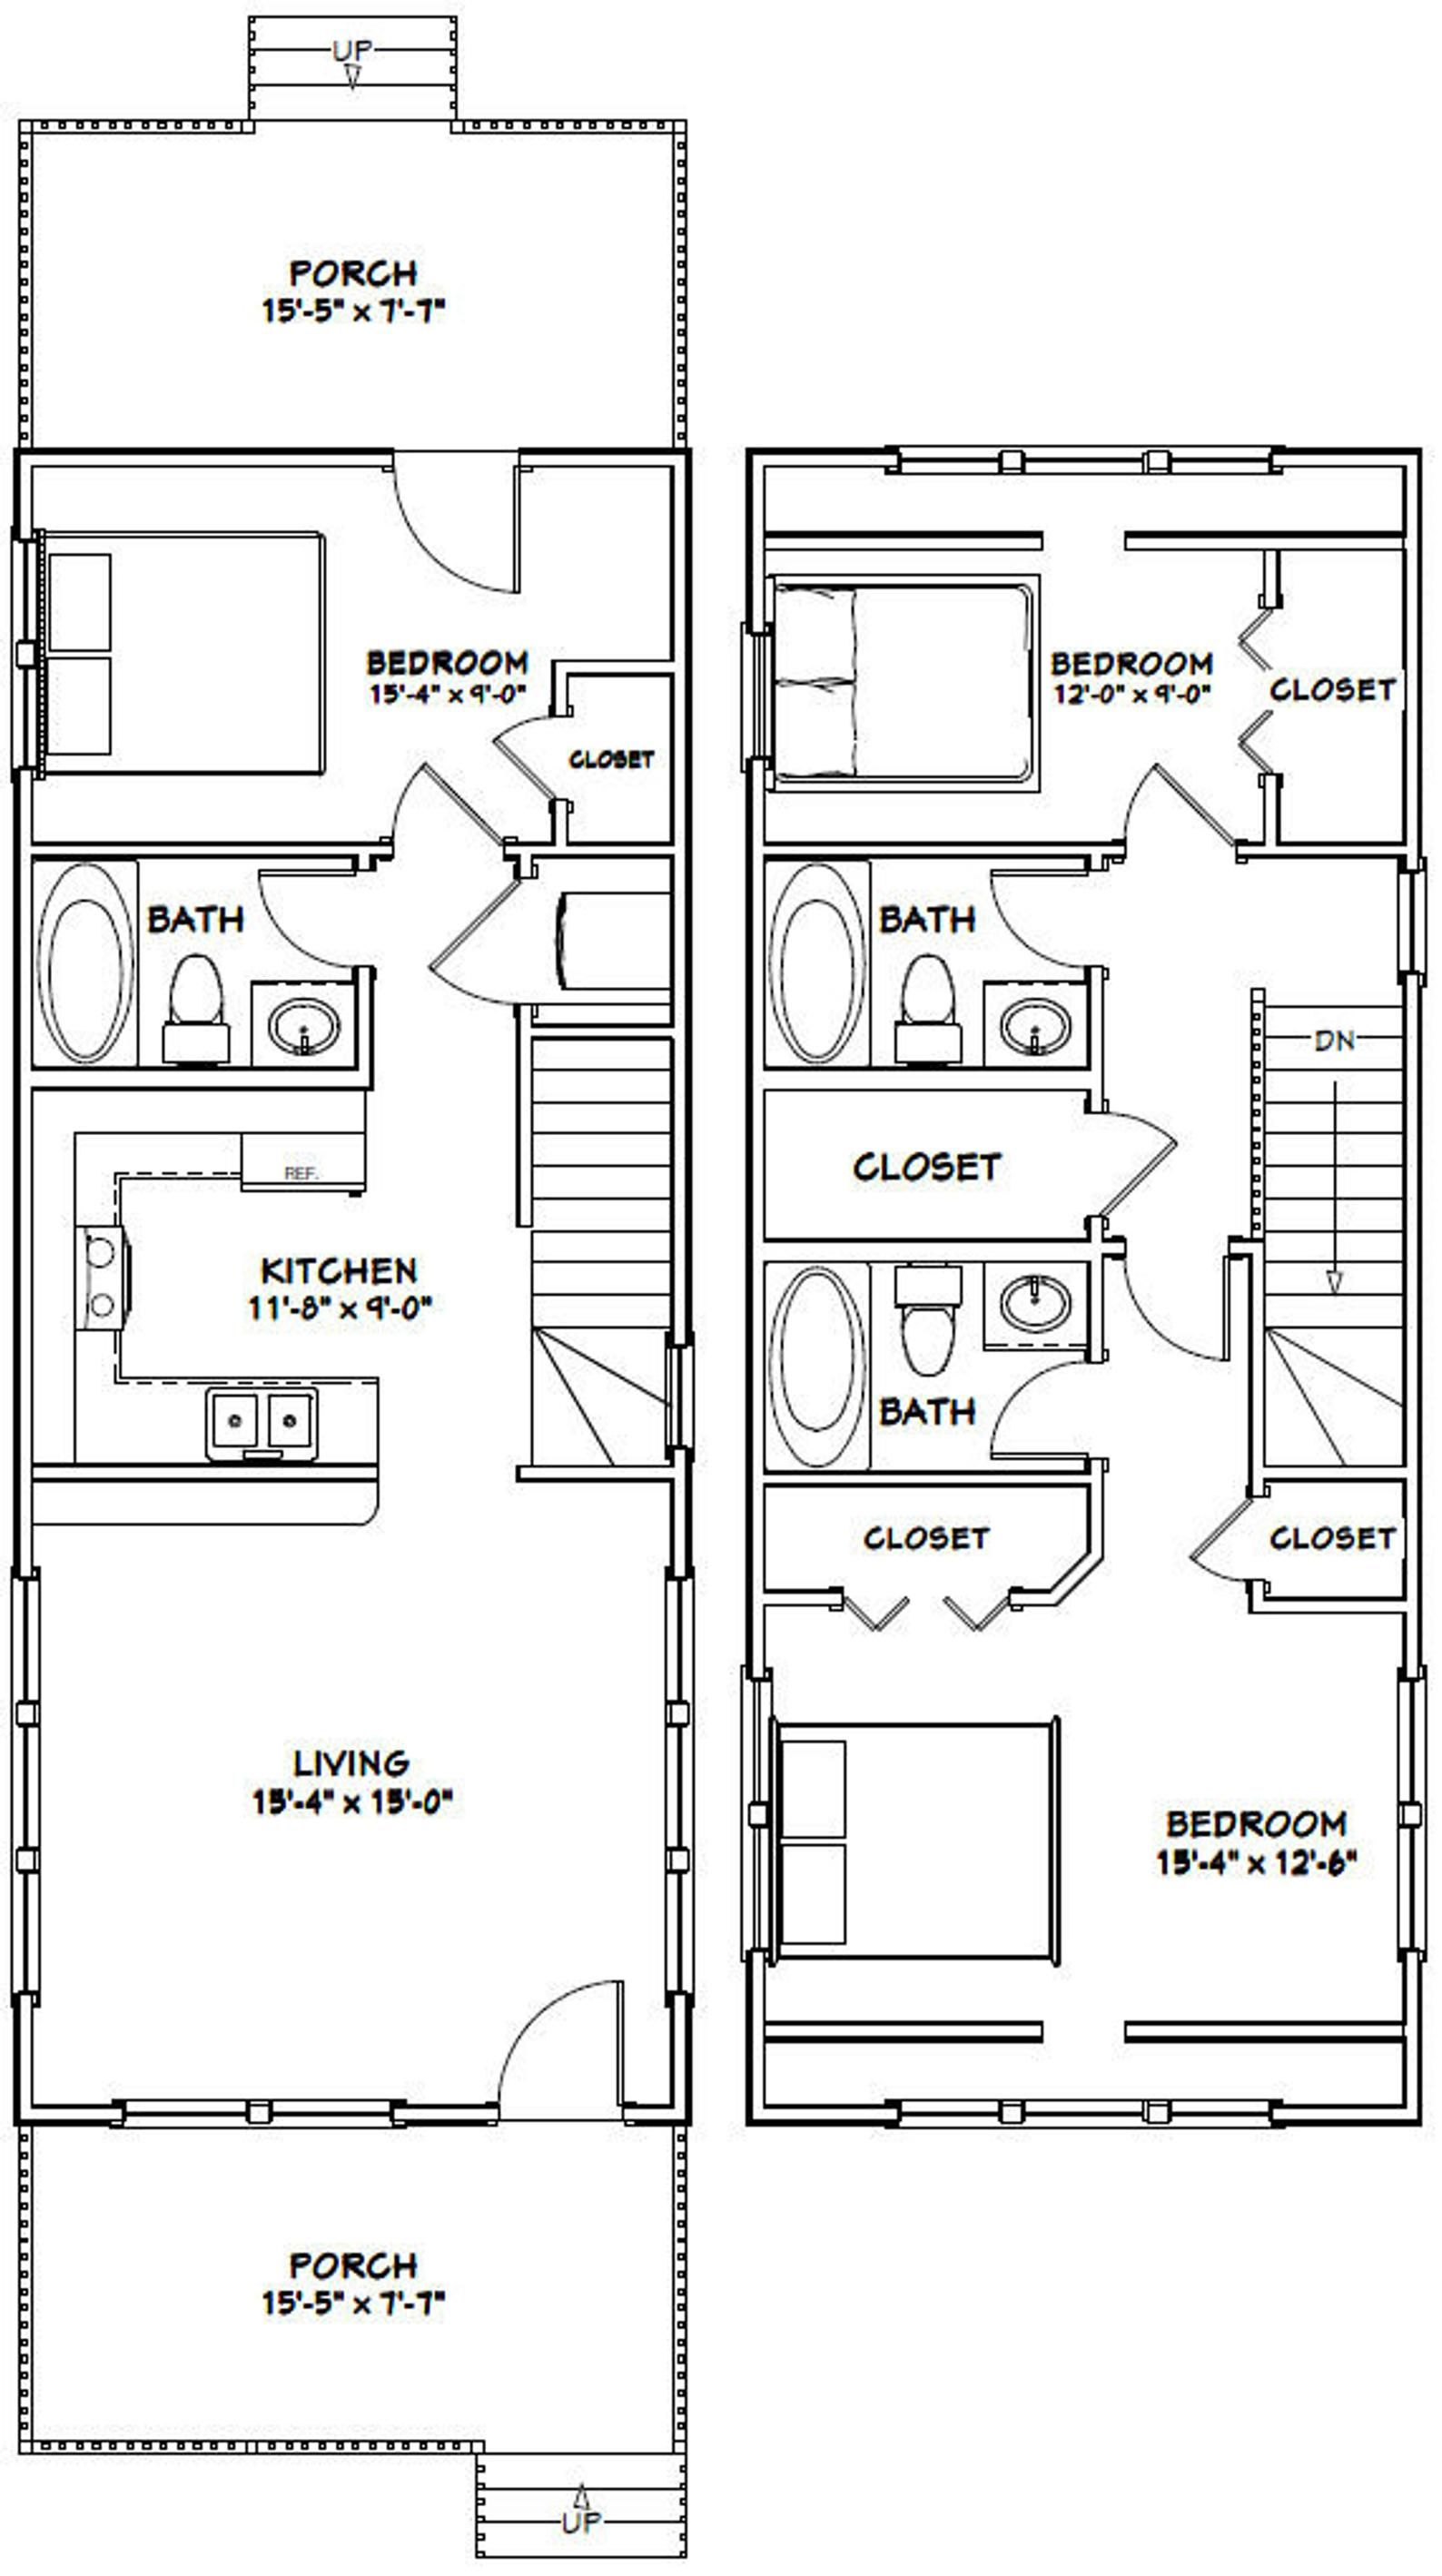 16x40 House 1193 Sq Ft Pdf Floor Plan Instant Etsy Narrow House Plans Tiny House Floor Plans Small House Floor Plans